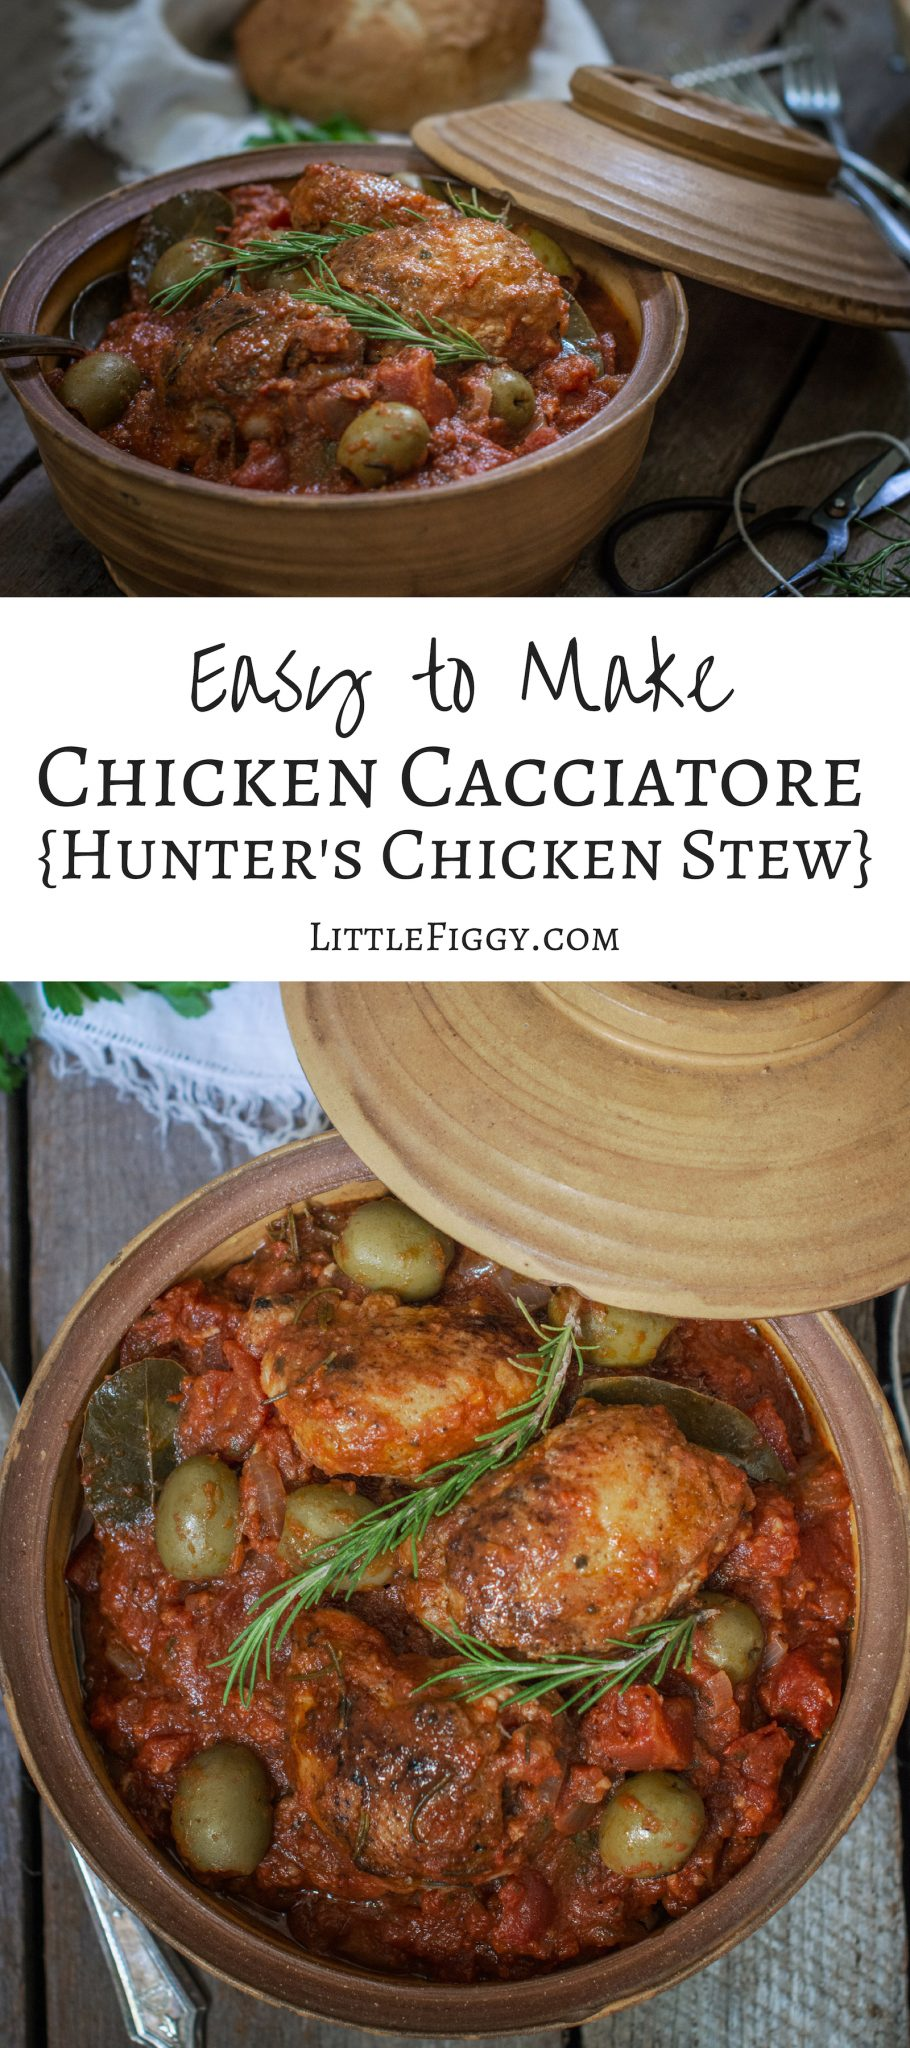 Make this easy Chicken Cacciatore - Hunters Chicken Stew dinner recipe! Full of rich flavors that is perfect for sharing. Get the recipe at Little Figgy Food @BronxLittleItaly @BXLittleItaly #ad #RealLittleItaly #LiBSauce #recipeoftheday #chickenrecipes #soupsandstews